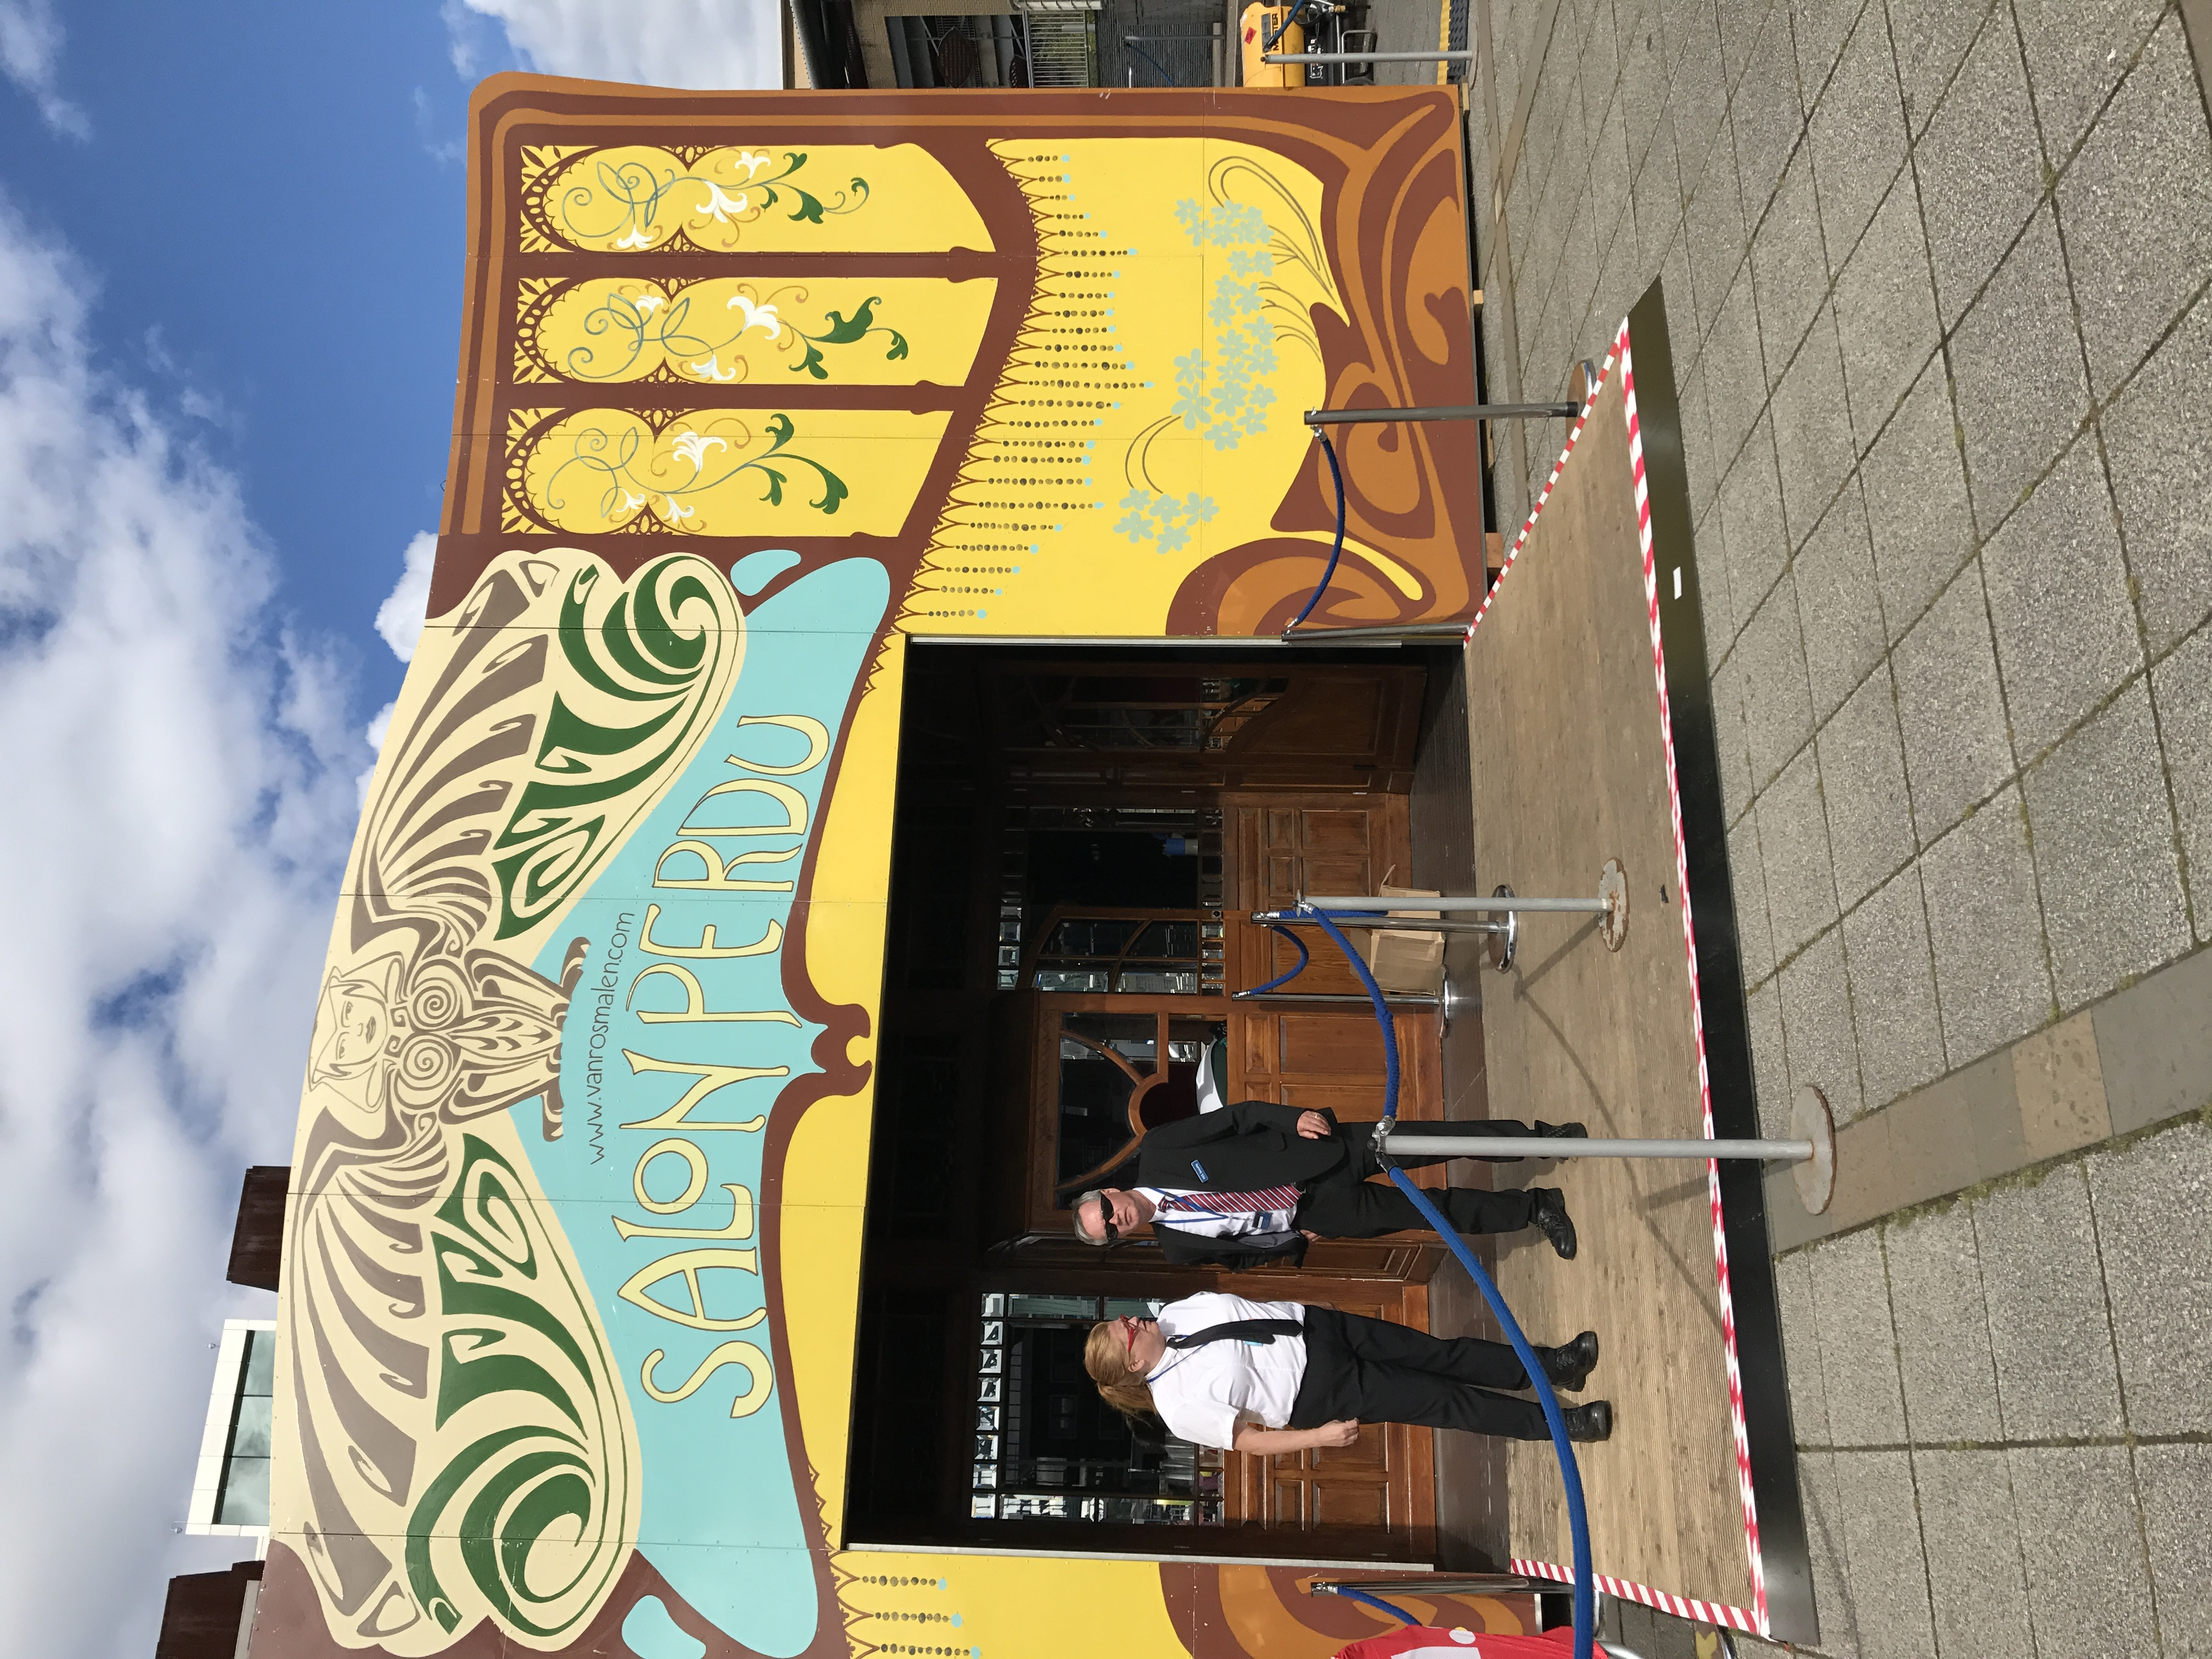 Blogging at the Spiegeltent. Meet me there 2